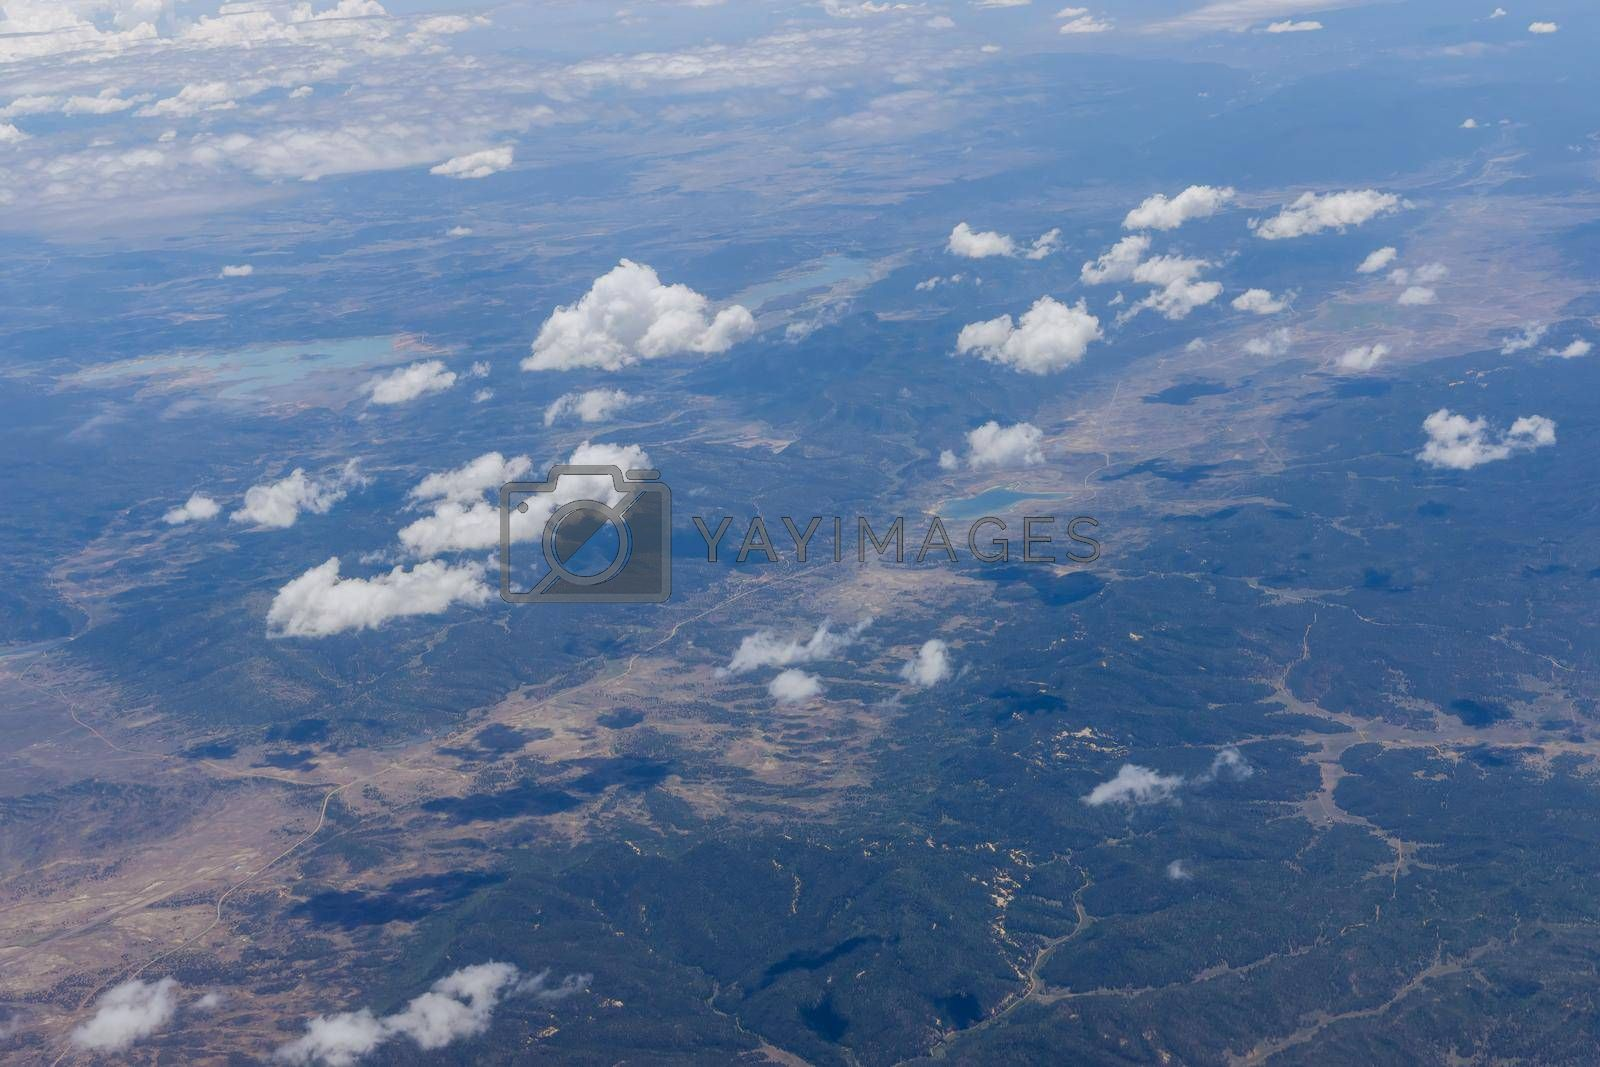 Royalty free image of Overview of fluffy clouds in mountains from an airplane, Arizona by ungvar